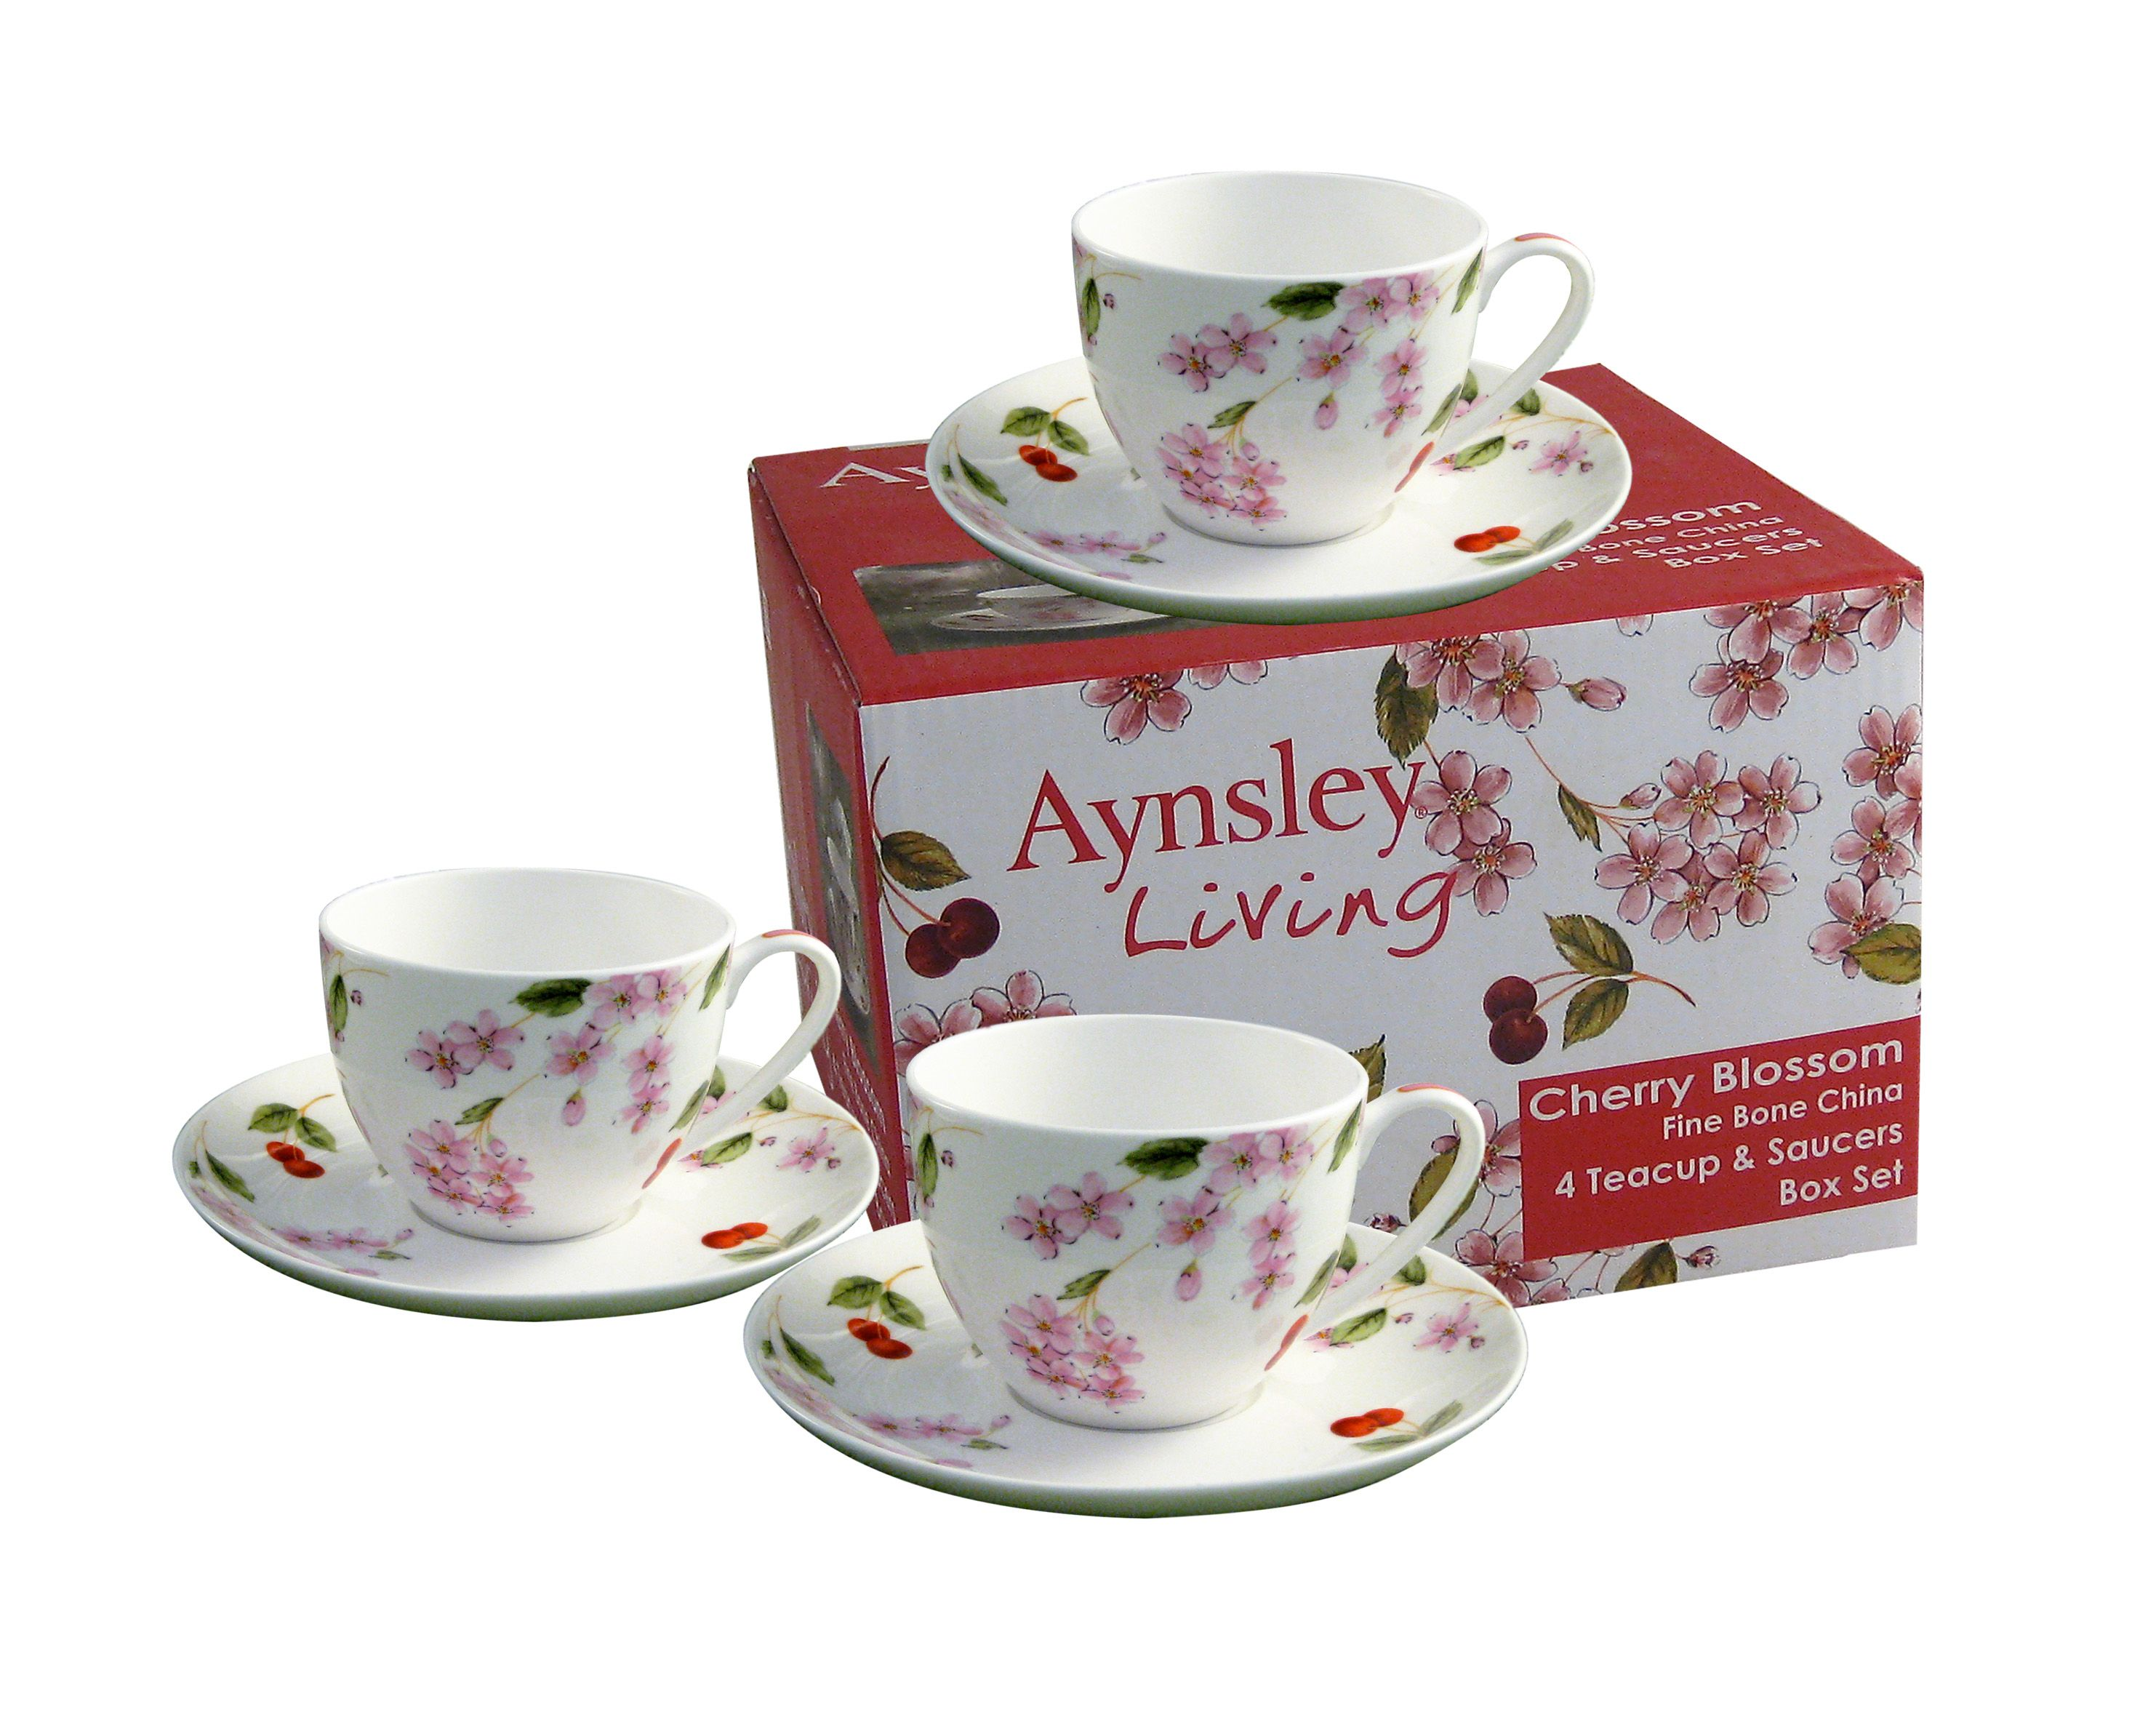 Cherry Blossom 4 person teacup and saucers set